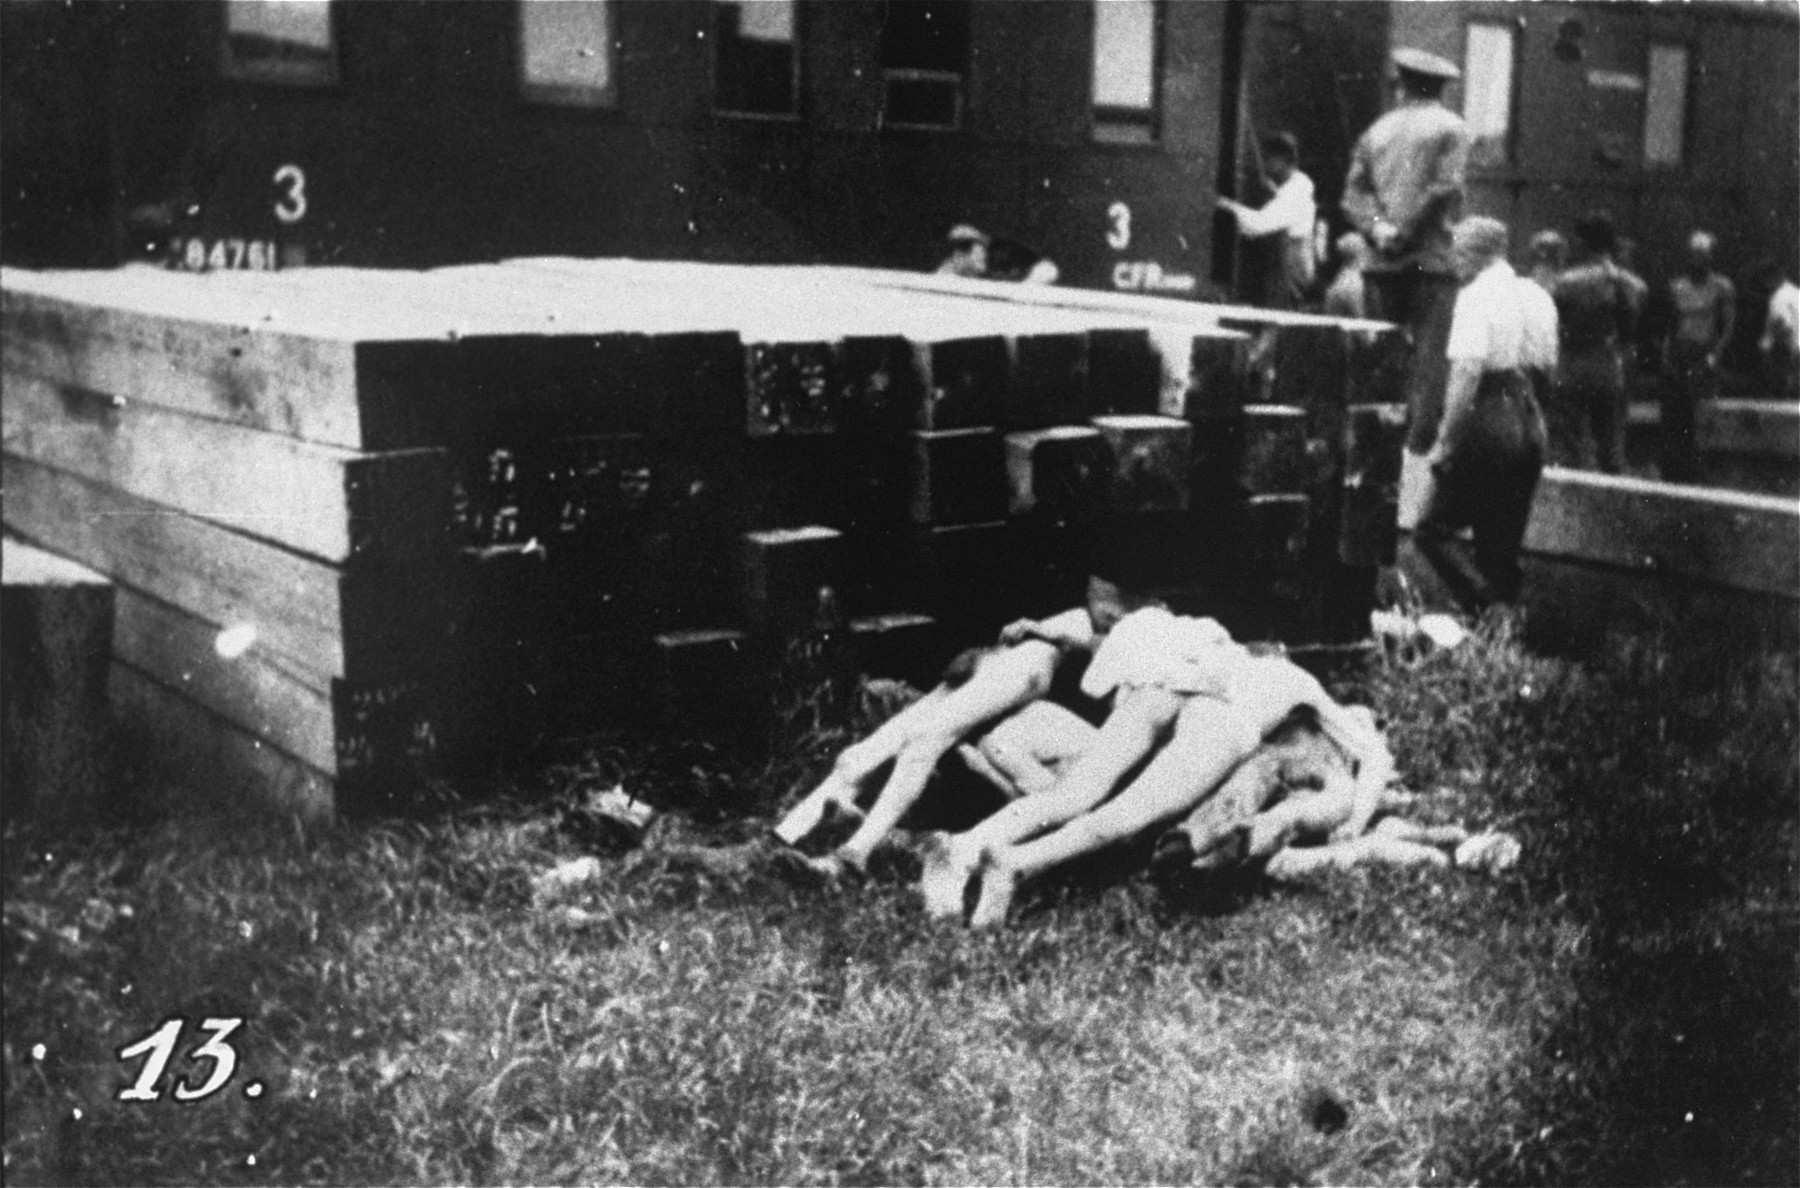 Romanian police and civilians remove corpses from the Iasi death train.